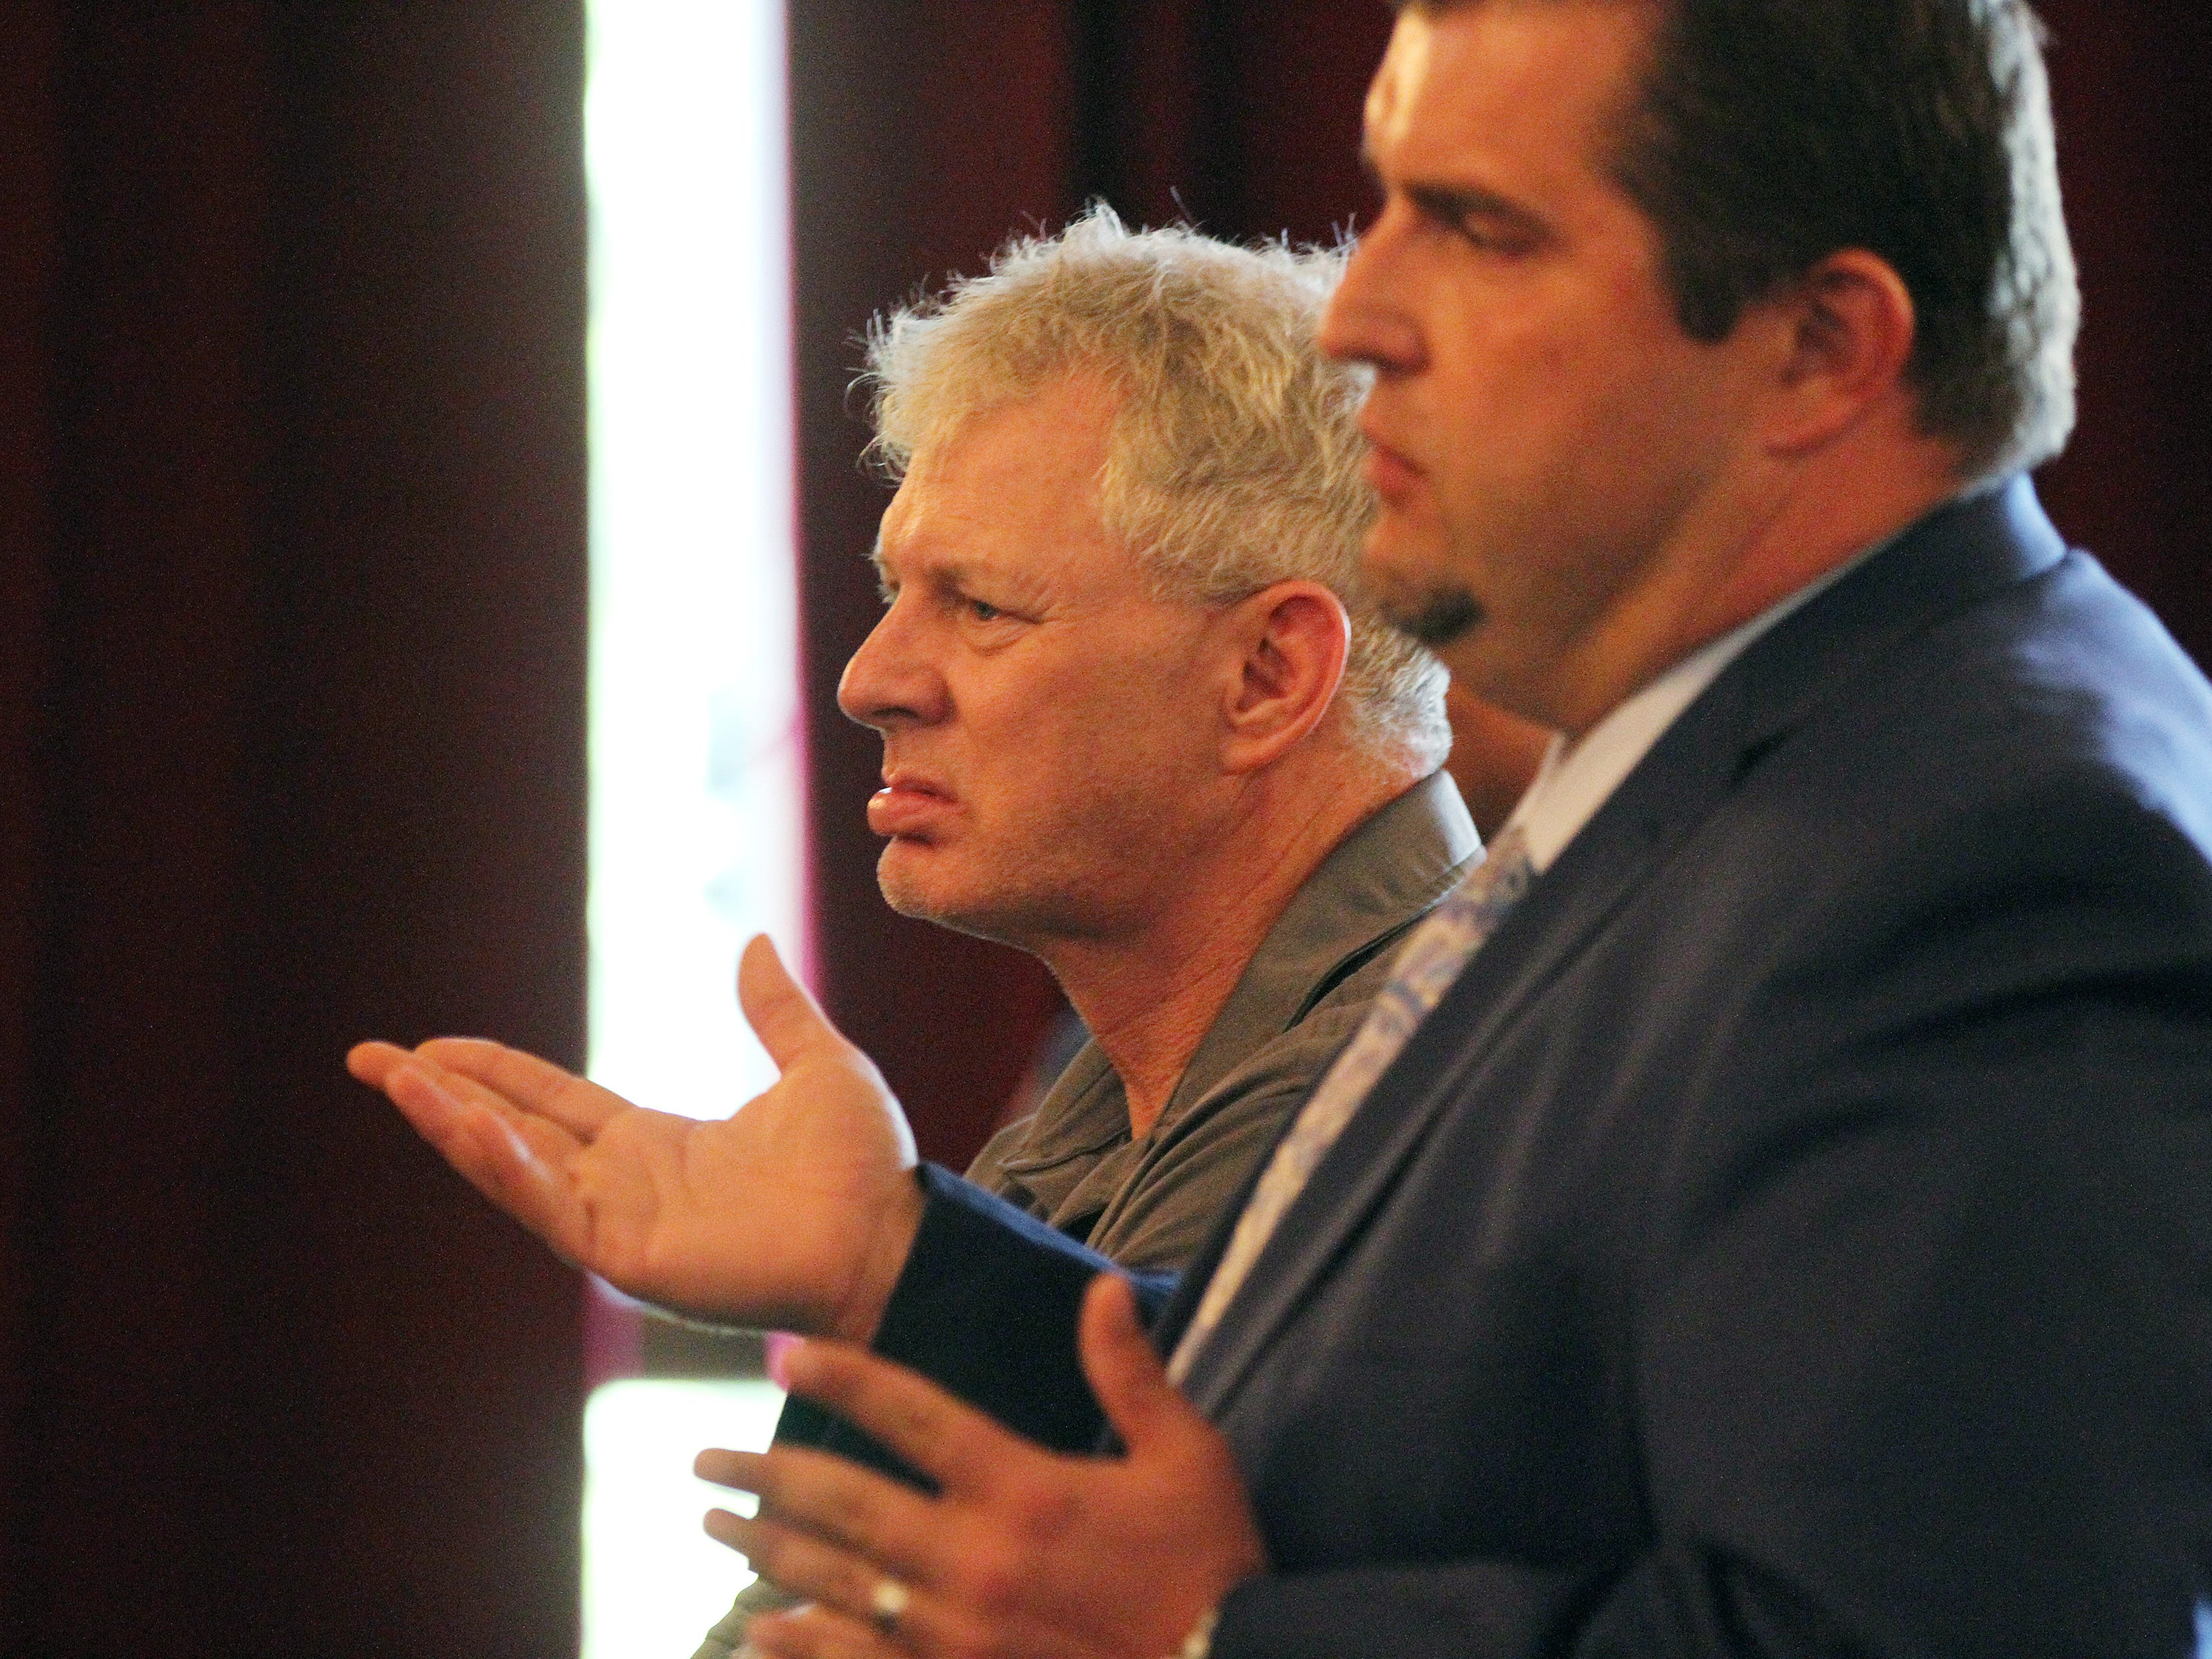 Former Major League Baseball player Lenny Dykstra, who is facing charges related to allegedly making terrorist threats against an Uber driver in Linden in May, rejects plea offer before Union County Superior Court Judge Joseph Donahue at Union County Courthouse in Elizabeth, NJ Thursday August 9, 2018. His case will go to the grand jury. His lawyer, Michael Brucki, speaks on his behalf.